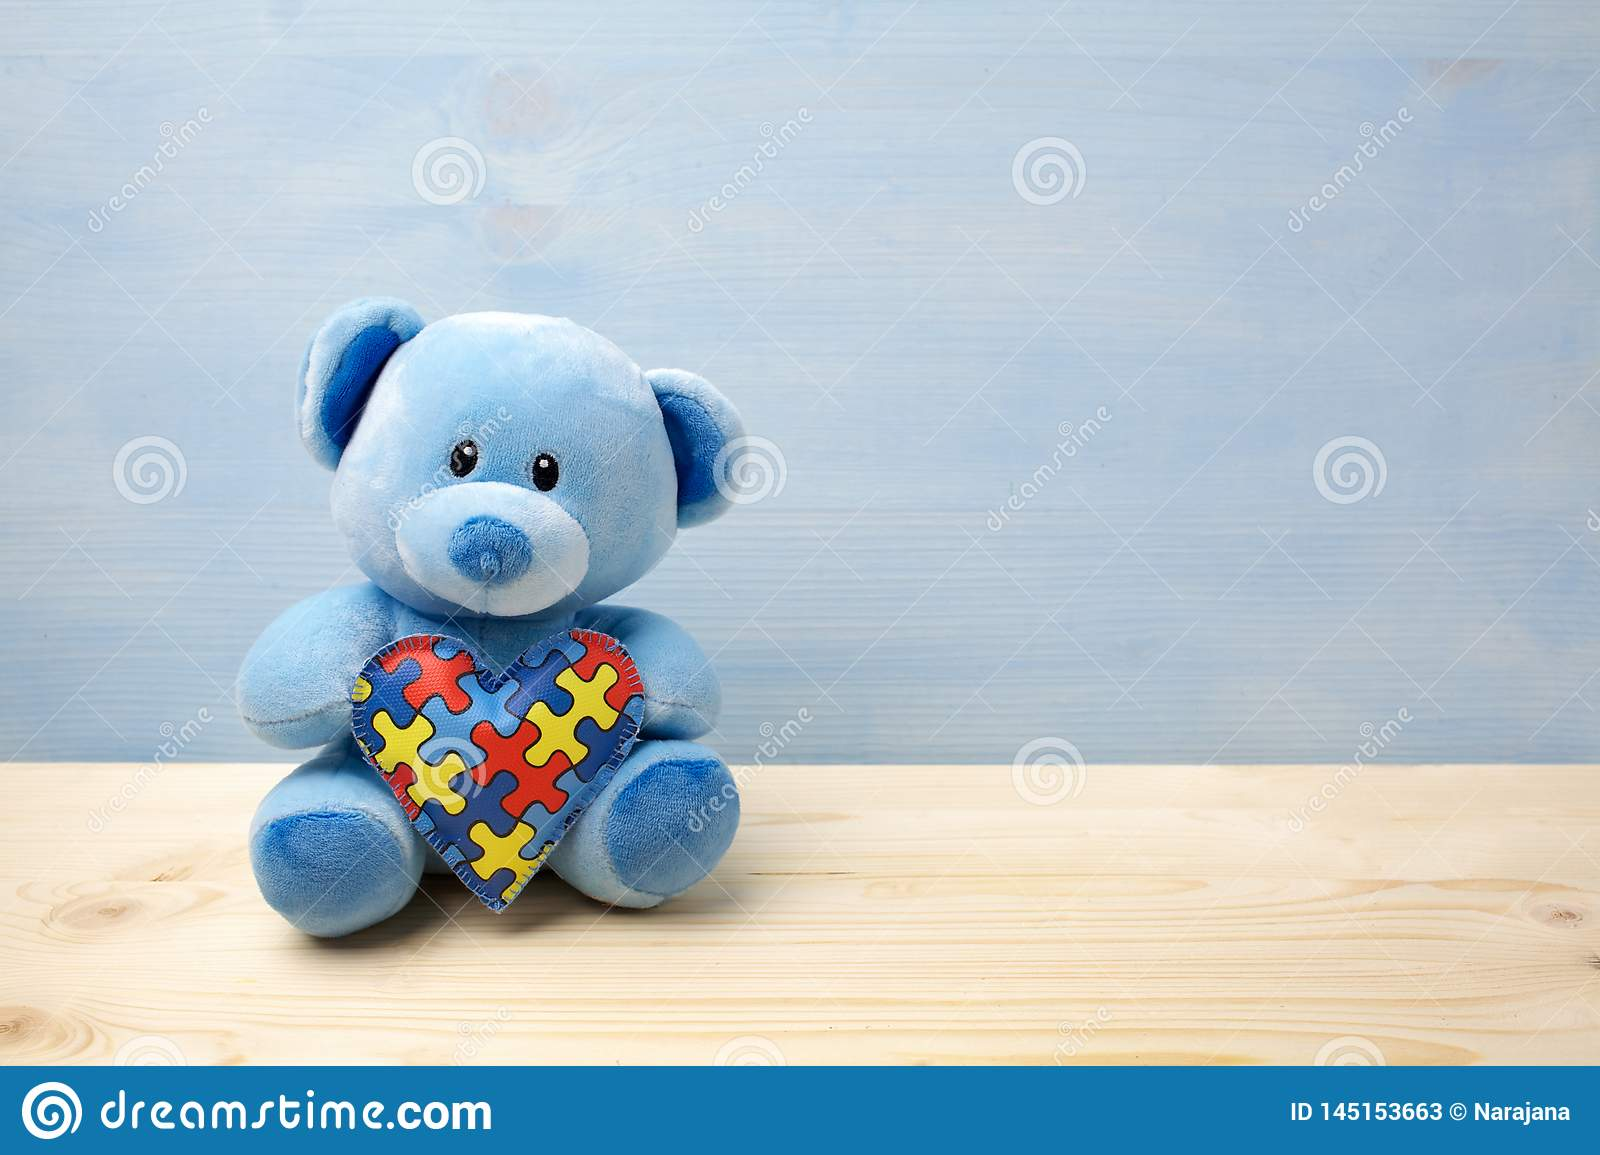 World Autism Awareness Day Concept With Teddy Bear Holding Puzzle